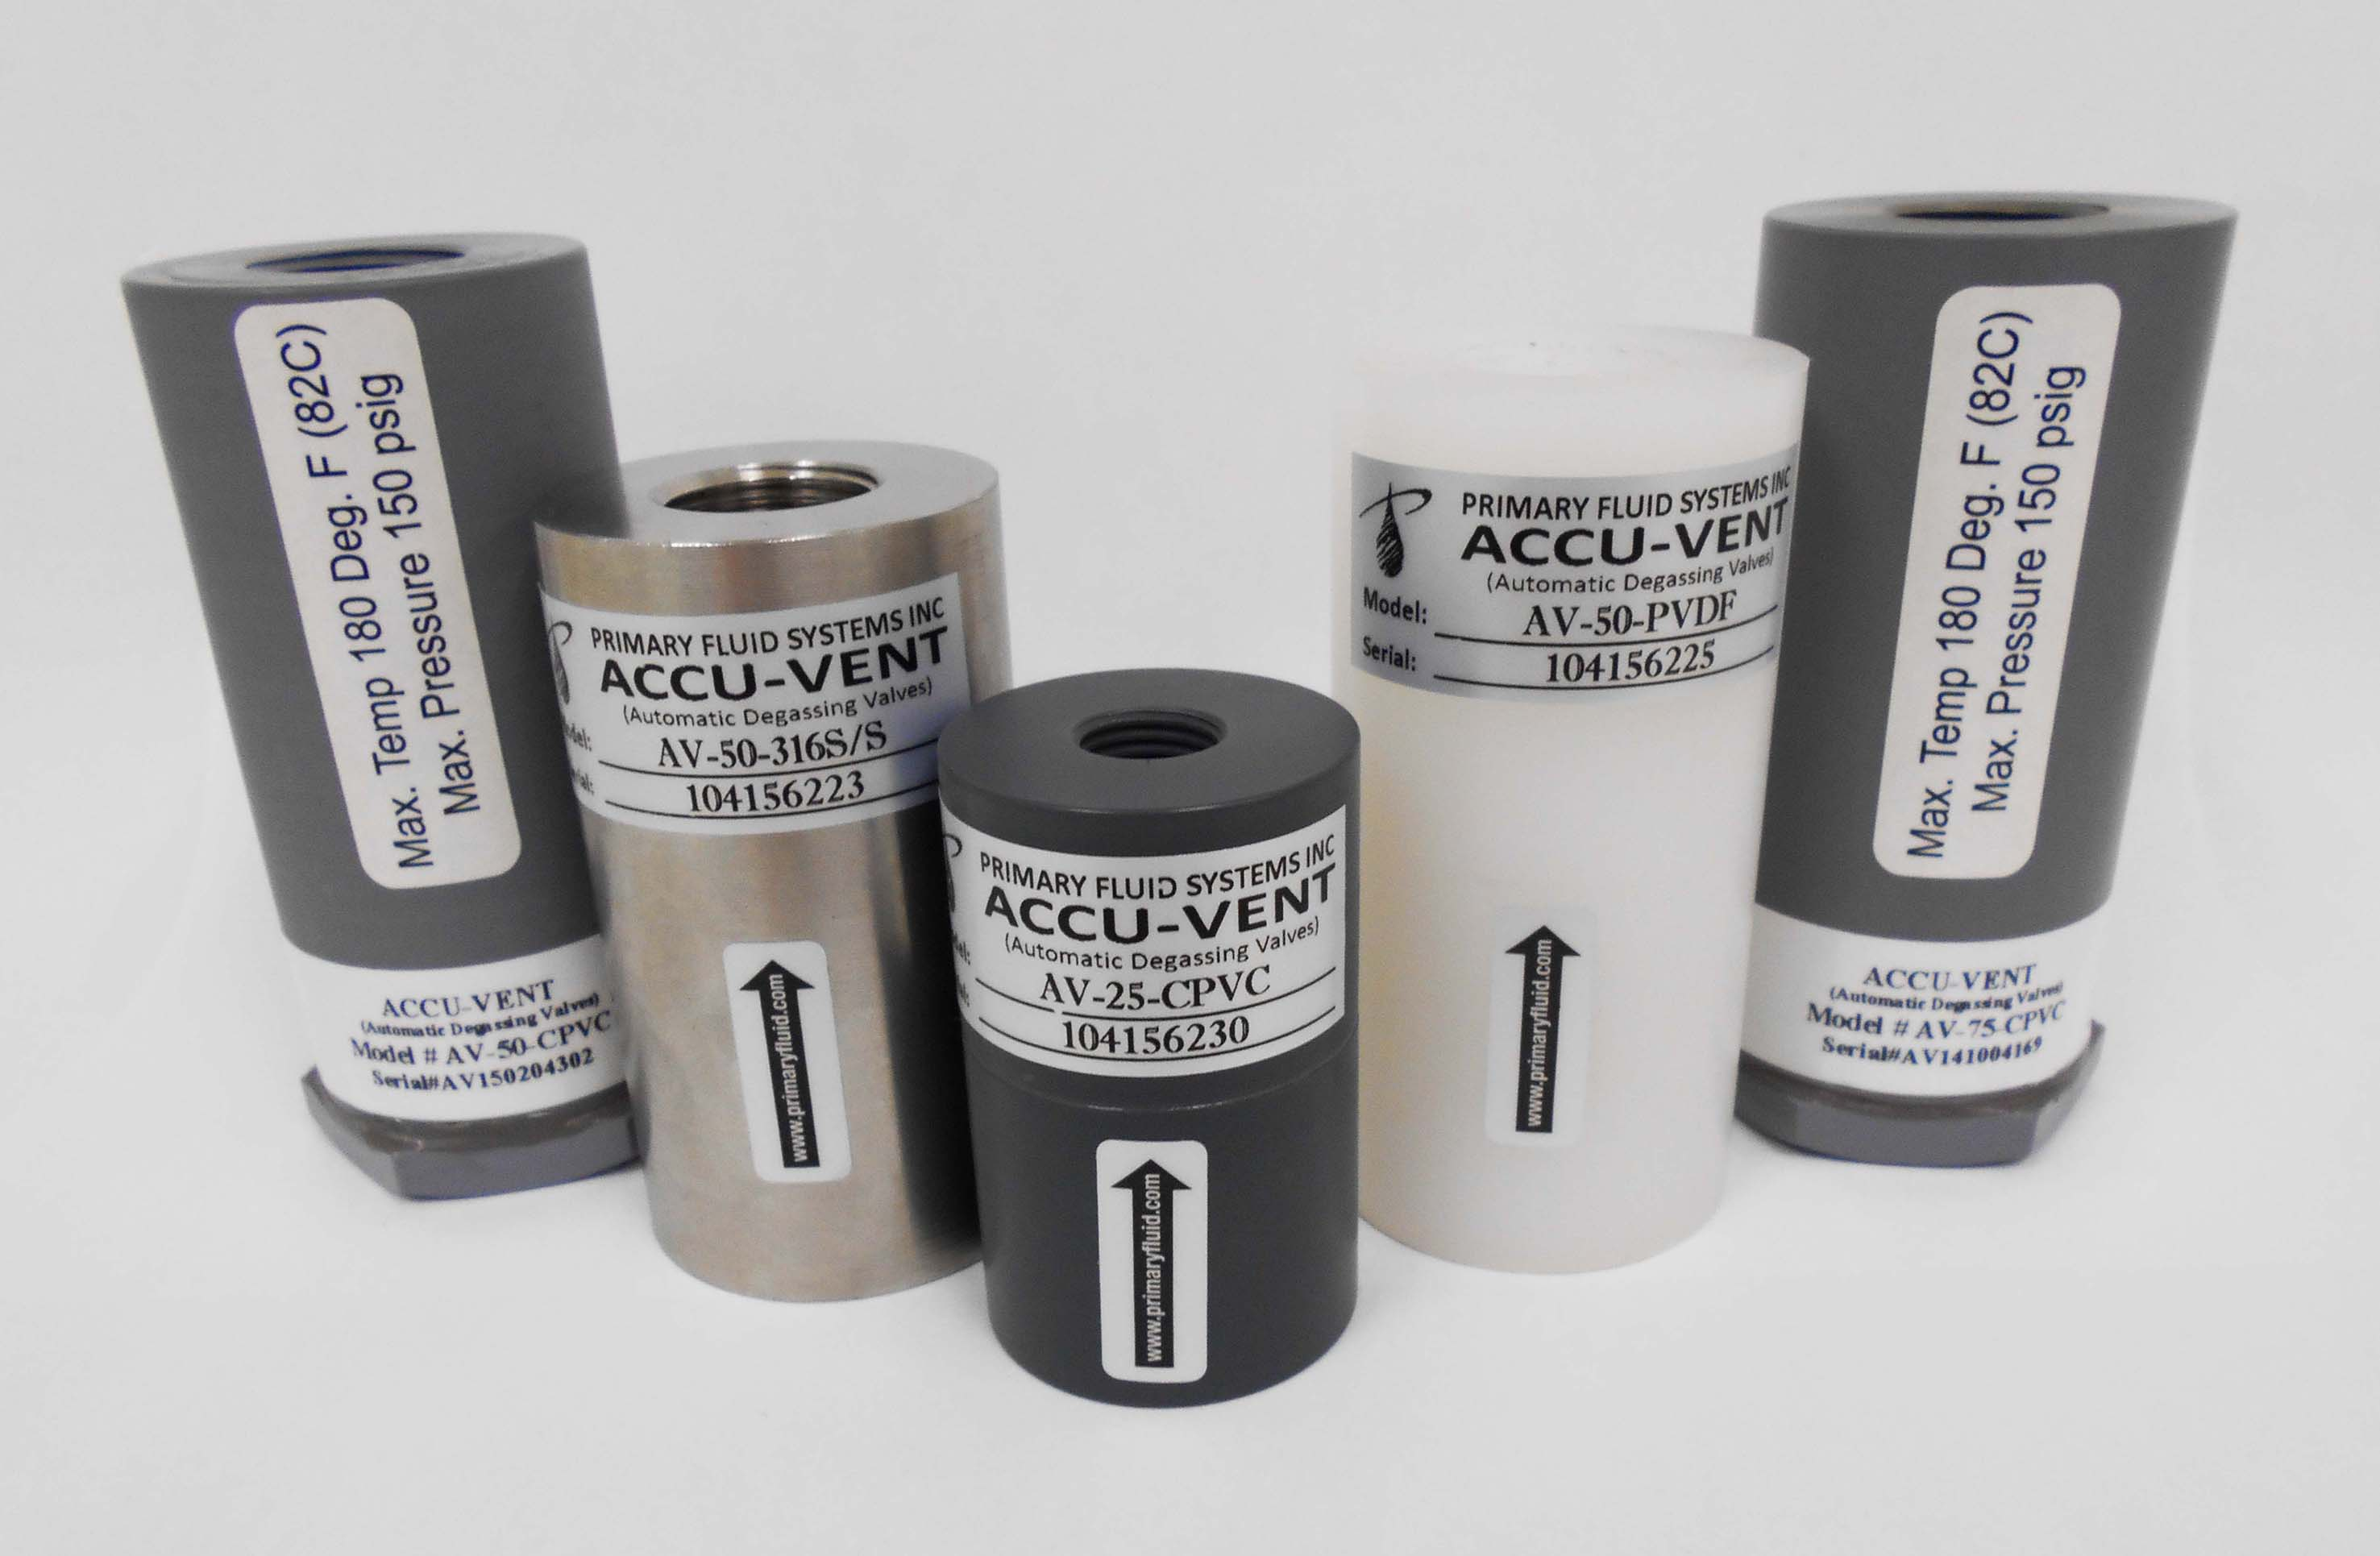 Accu-Vent Automatic Degassing Valve in Metal and Plastic